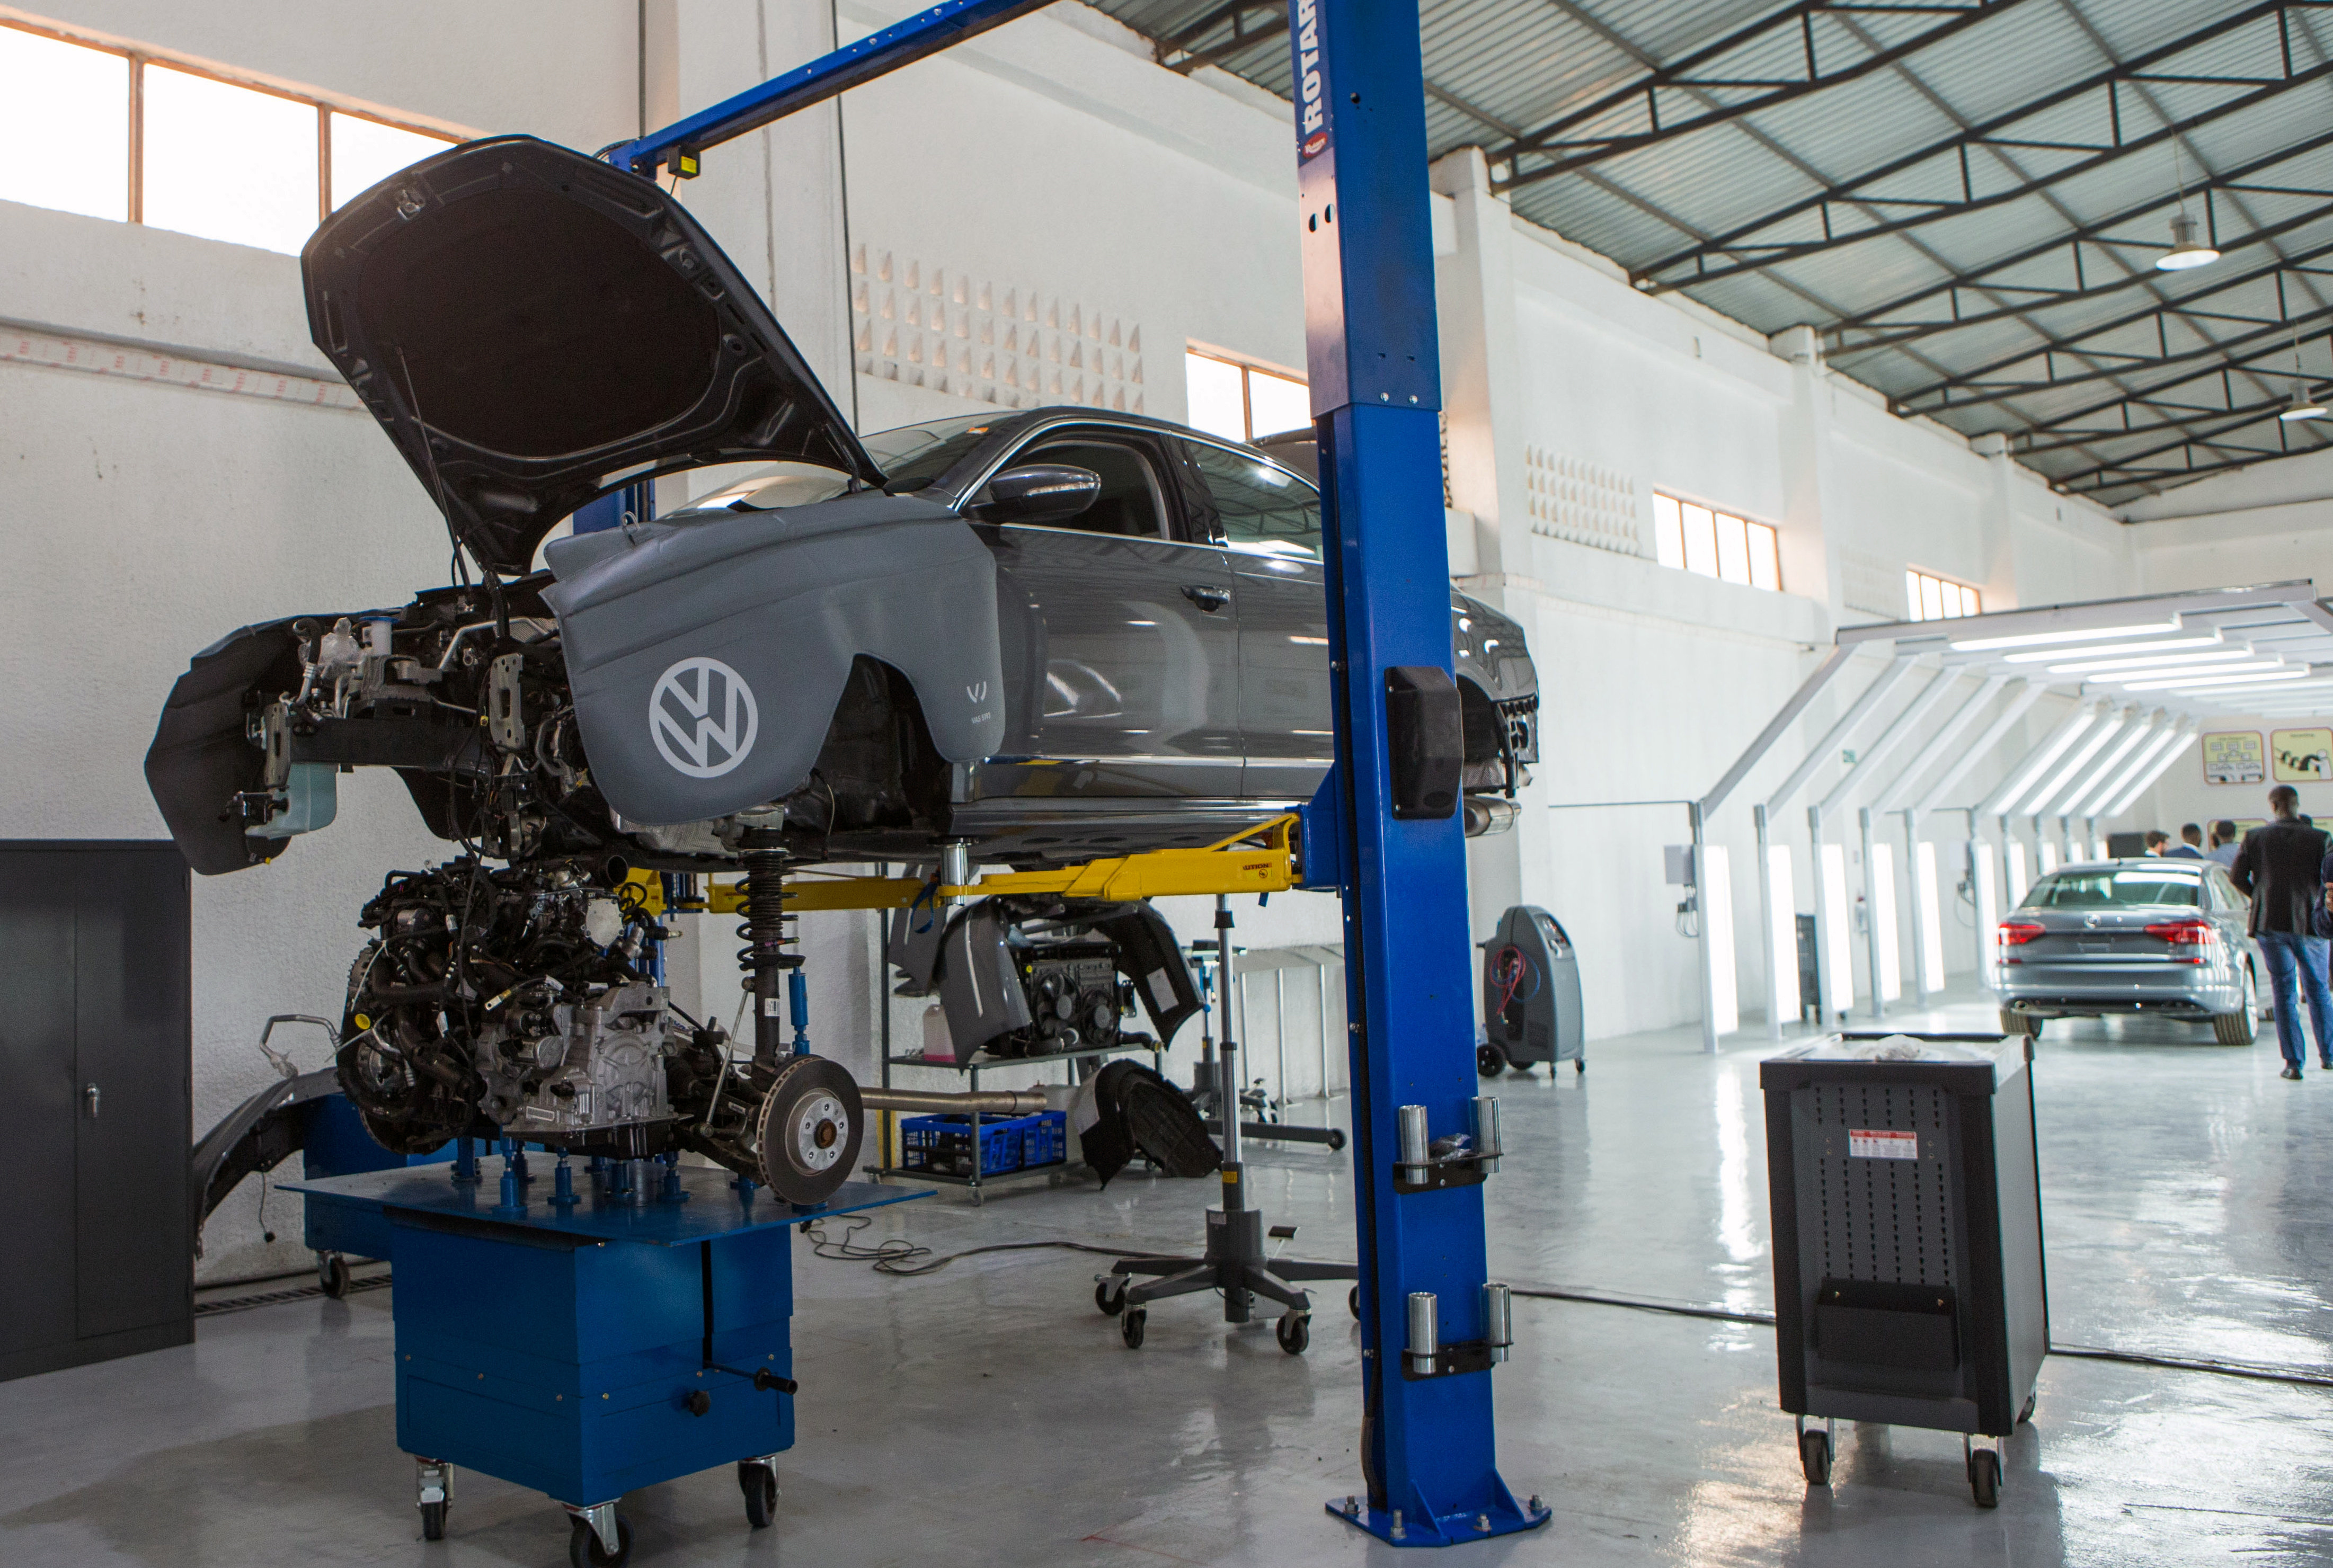 A vehicle is seen inside the first domestically built car rolled off the assembly line at Volkswagen's new factory in Kigali, Rwanda June 27, 2018.